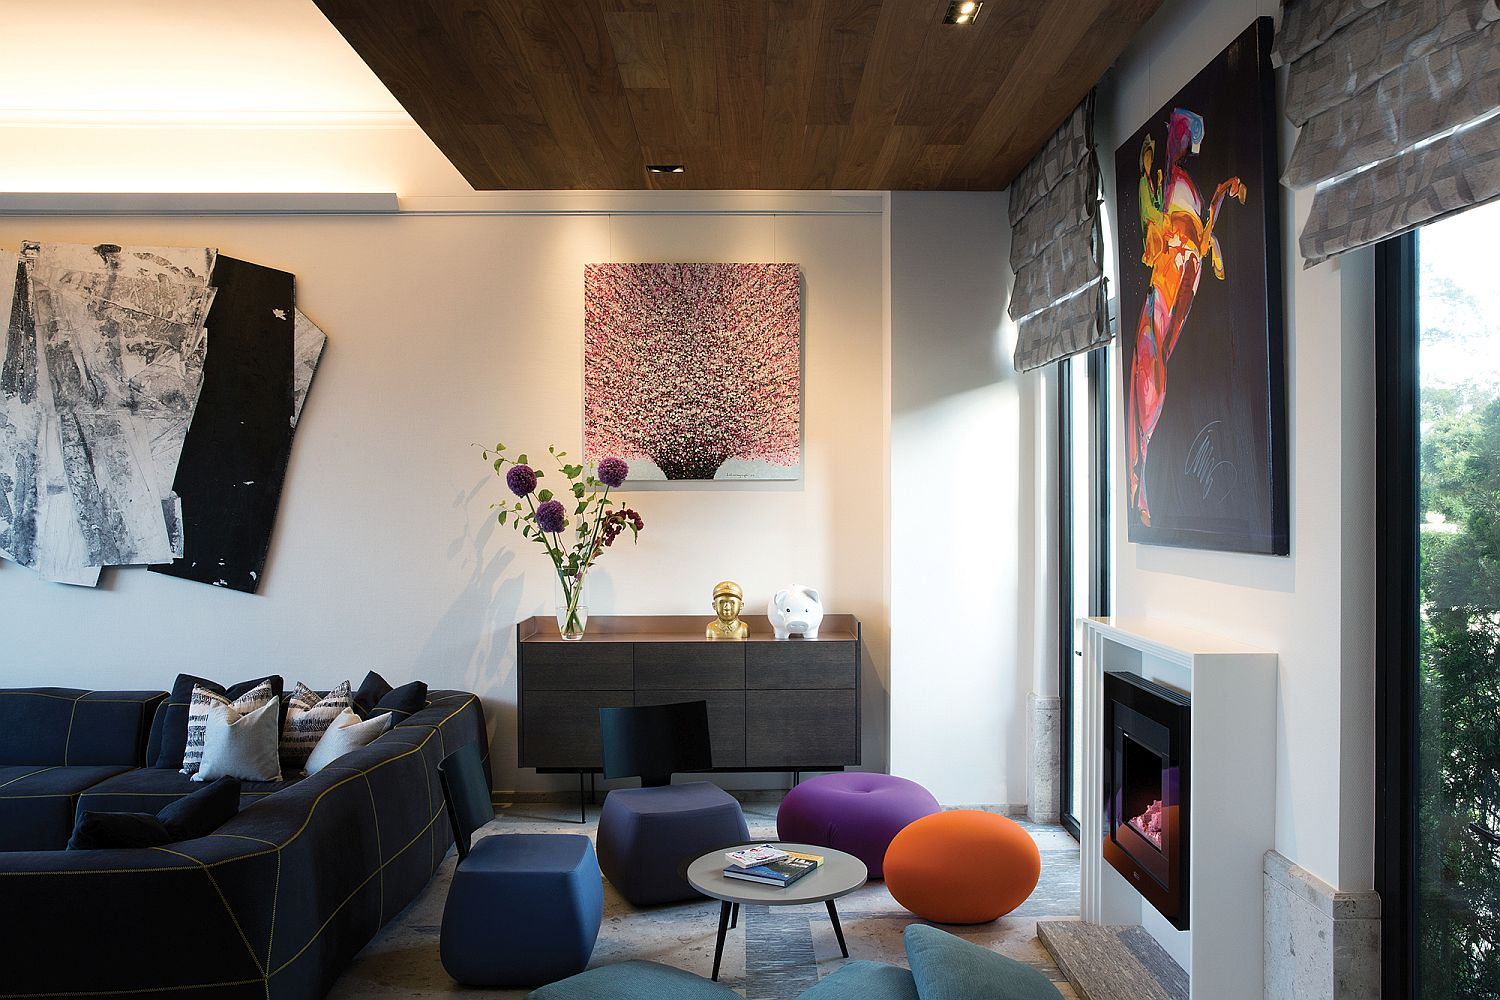 Multi-colored-playful-seats-add-to-the-whimsical-style-of-the-contemporary-home-80335